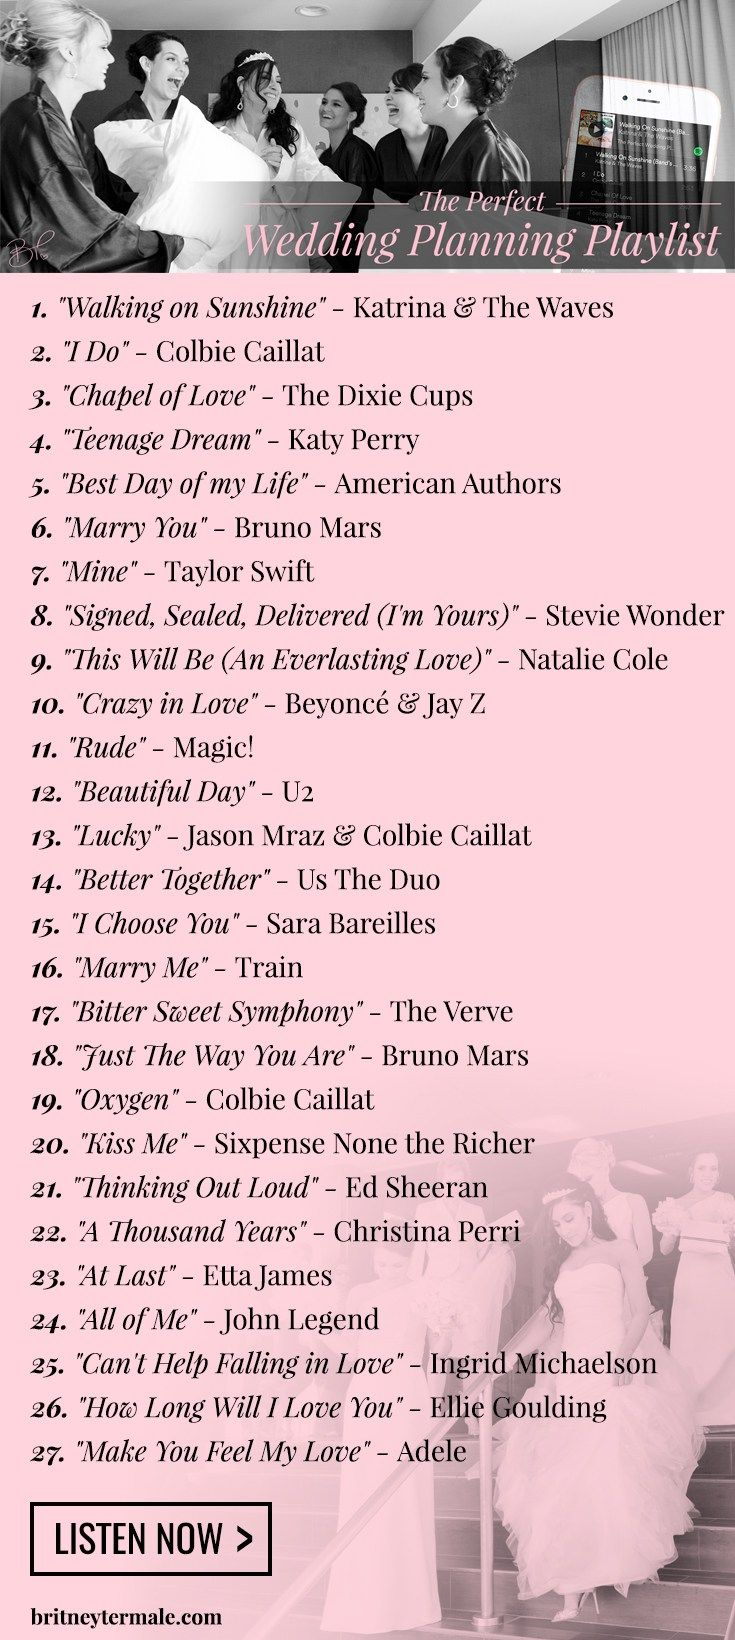 173 best music images on Pinterest   Playlists, Song list and ...